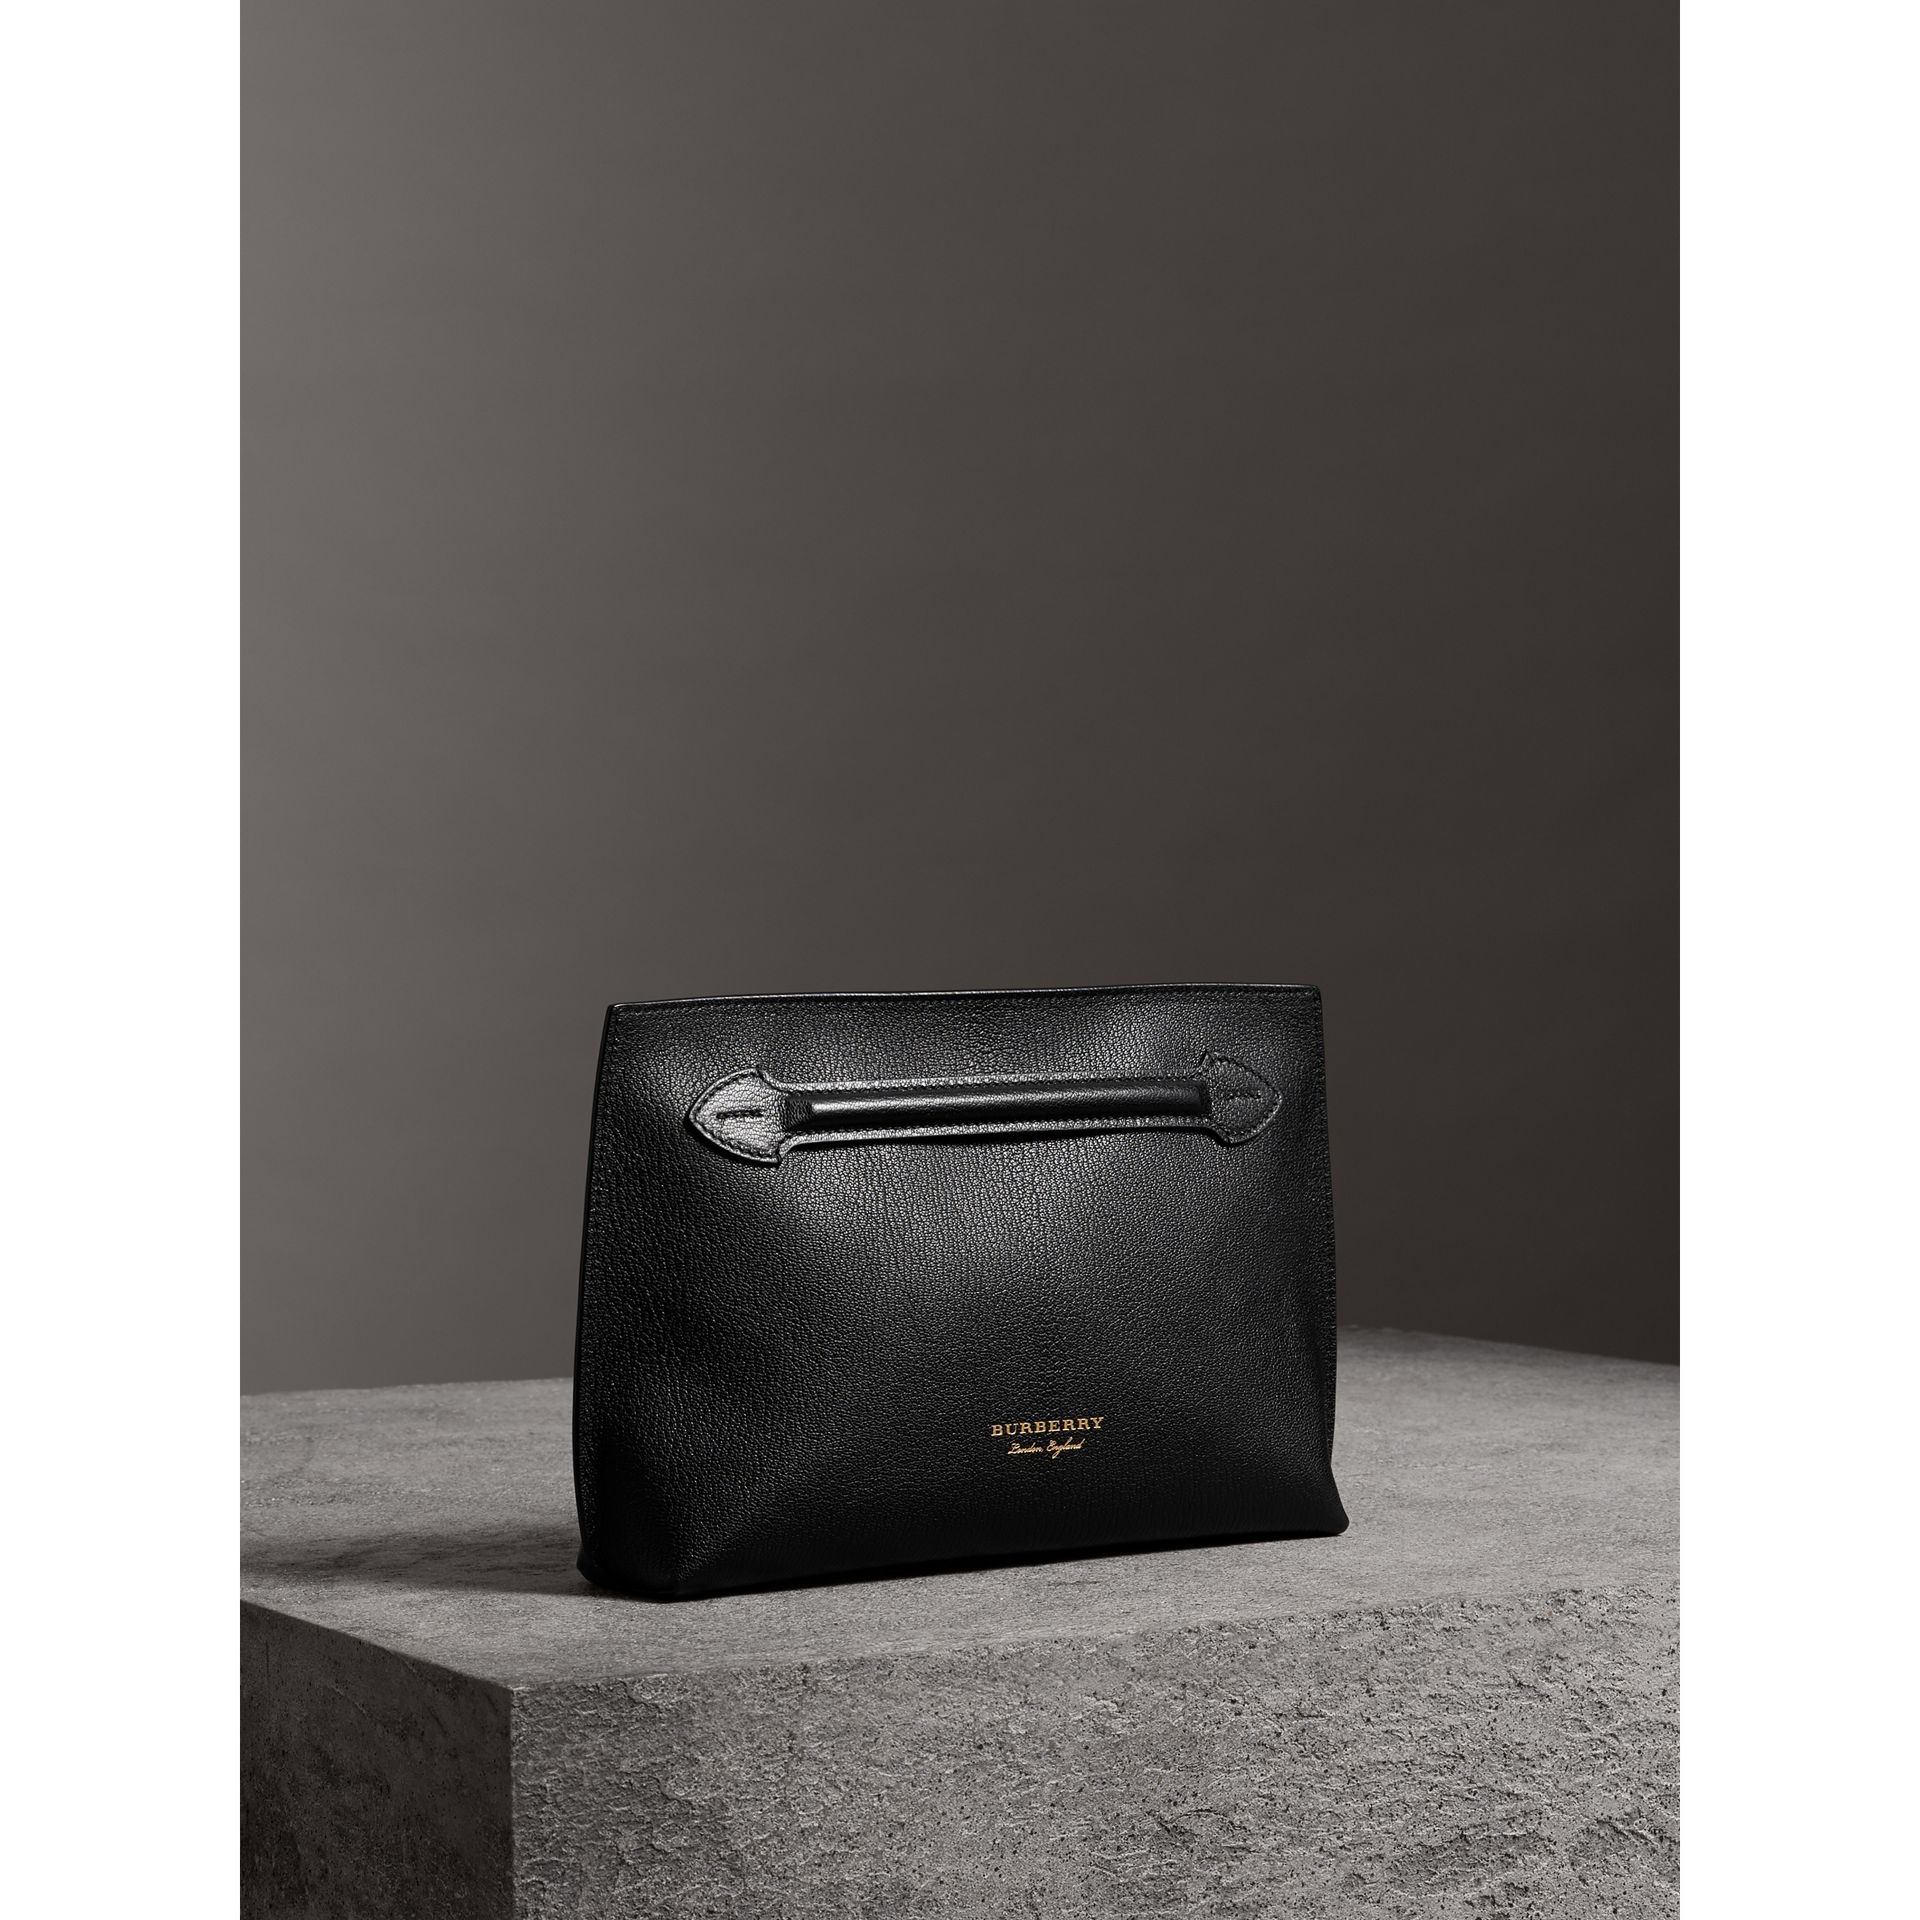 Grainy Leather Wristlet Clutch in Black - Women | Burberry Singapore - gallery image 6